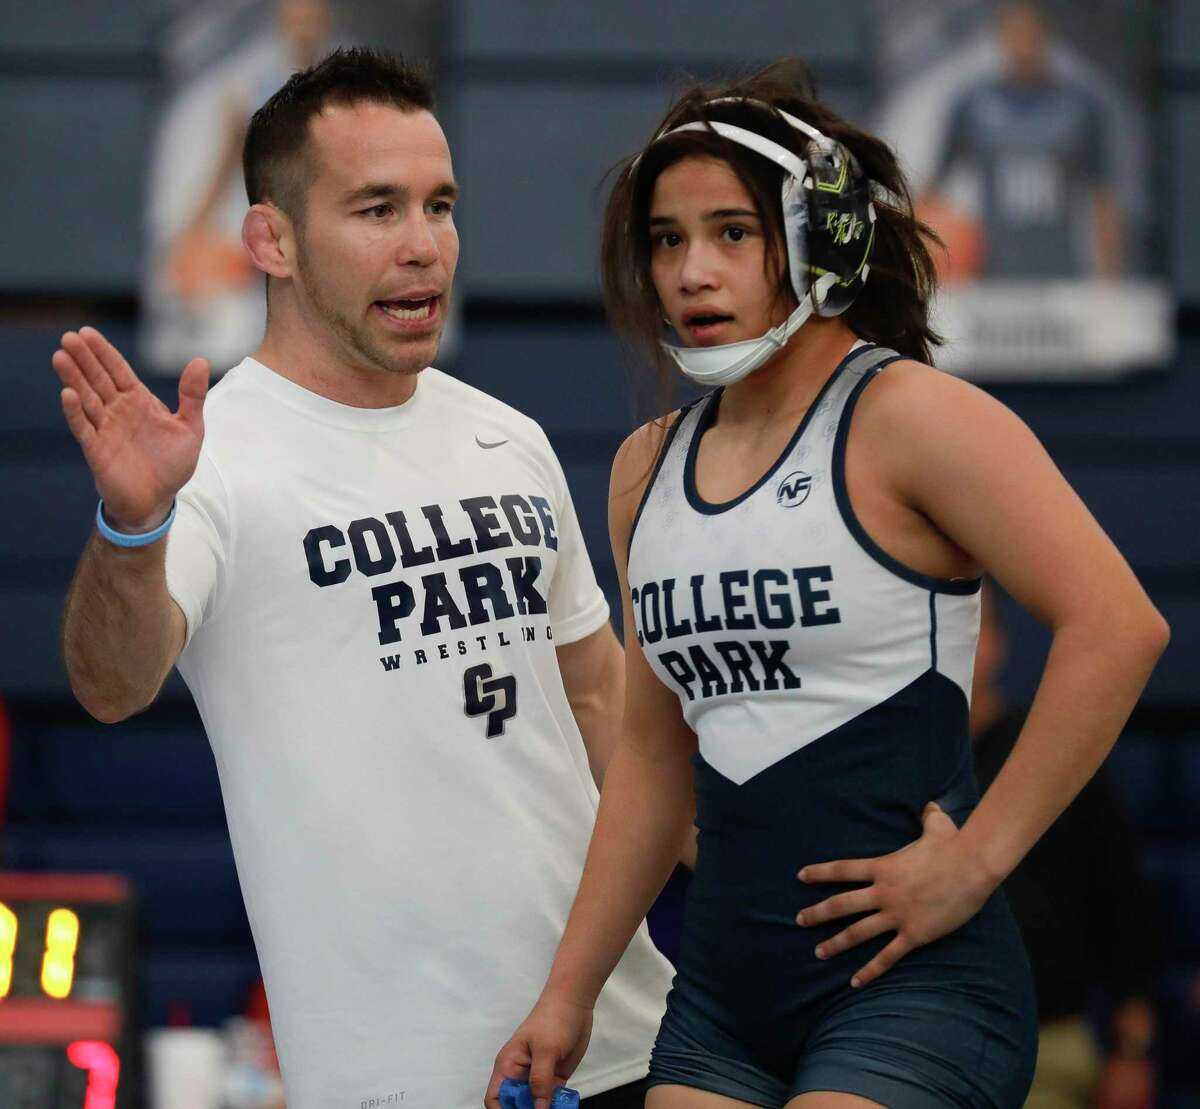 College Park head coach Erik Spjut talks with Jayden Bazemore during a break in a 119-pound championship bout at the District 8-6A wrestling championships at Bryan High School, Thursday, Feb. 6, 2020, in Bryan.